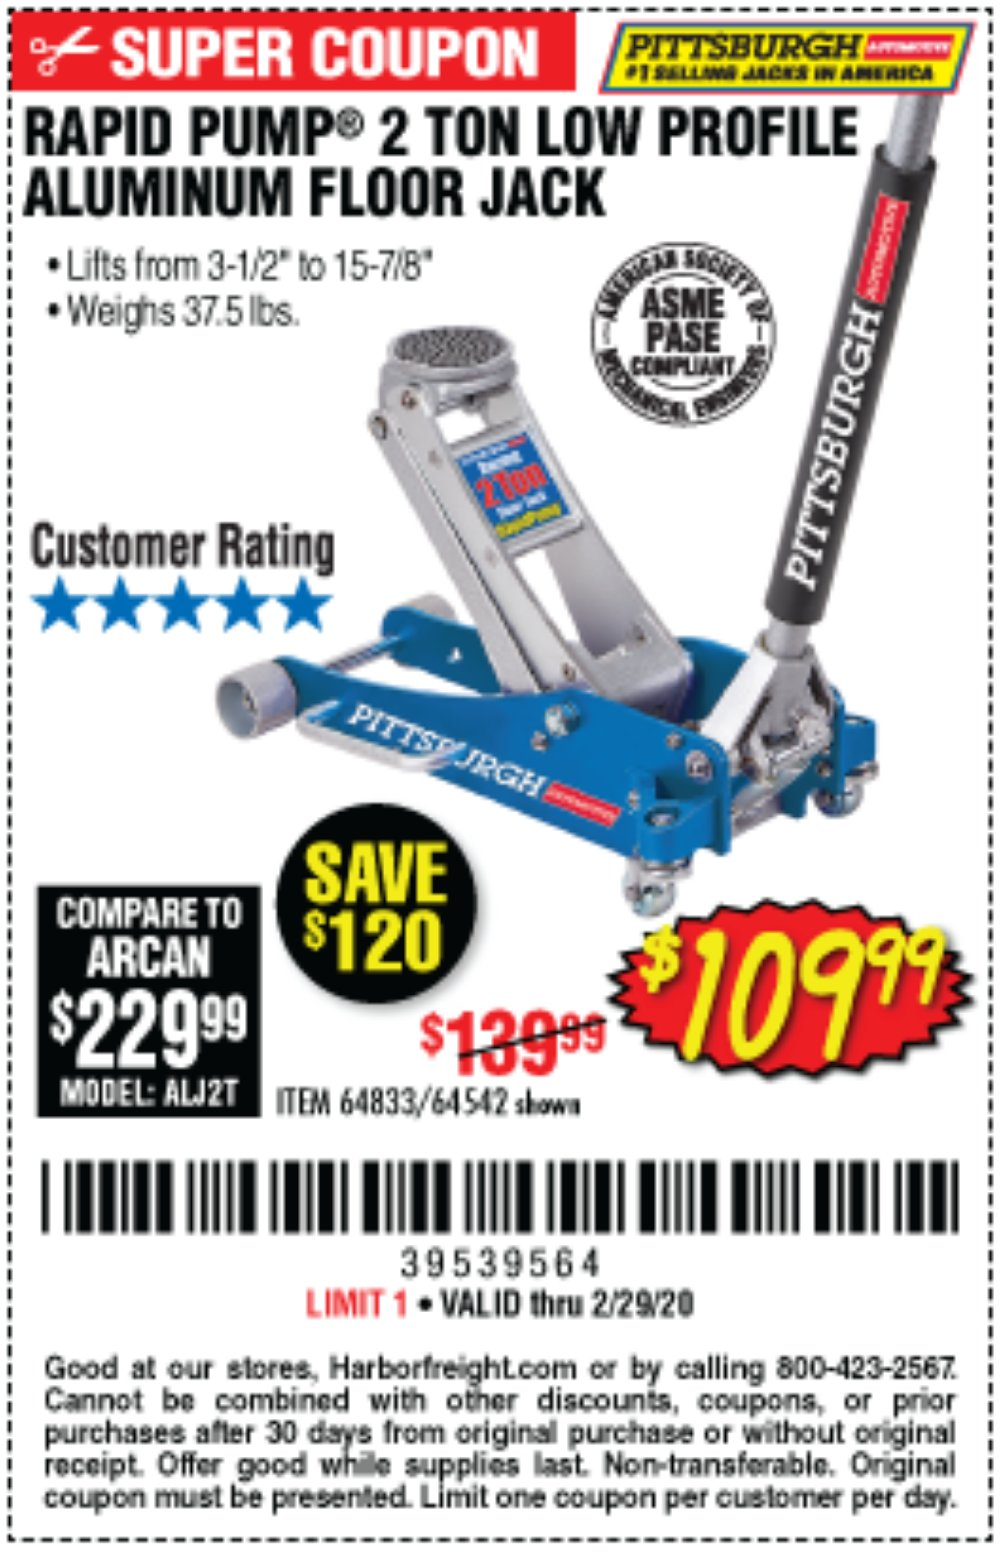 Harbor Freight Coupon, HF Coupons - Rapid Pump 2 Ton Low Profile Aluminum Floor Jack